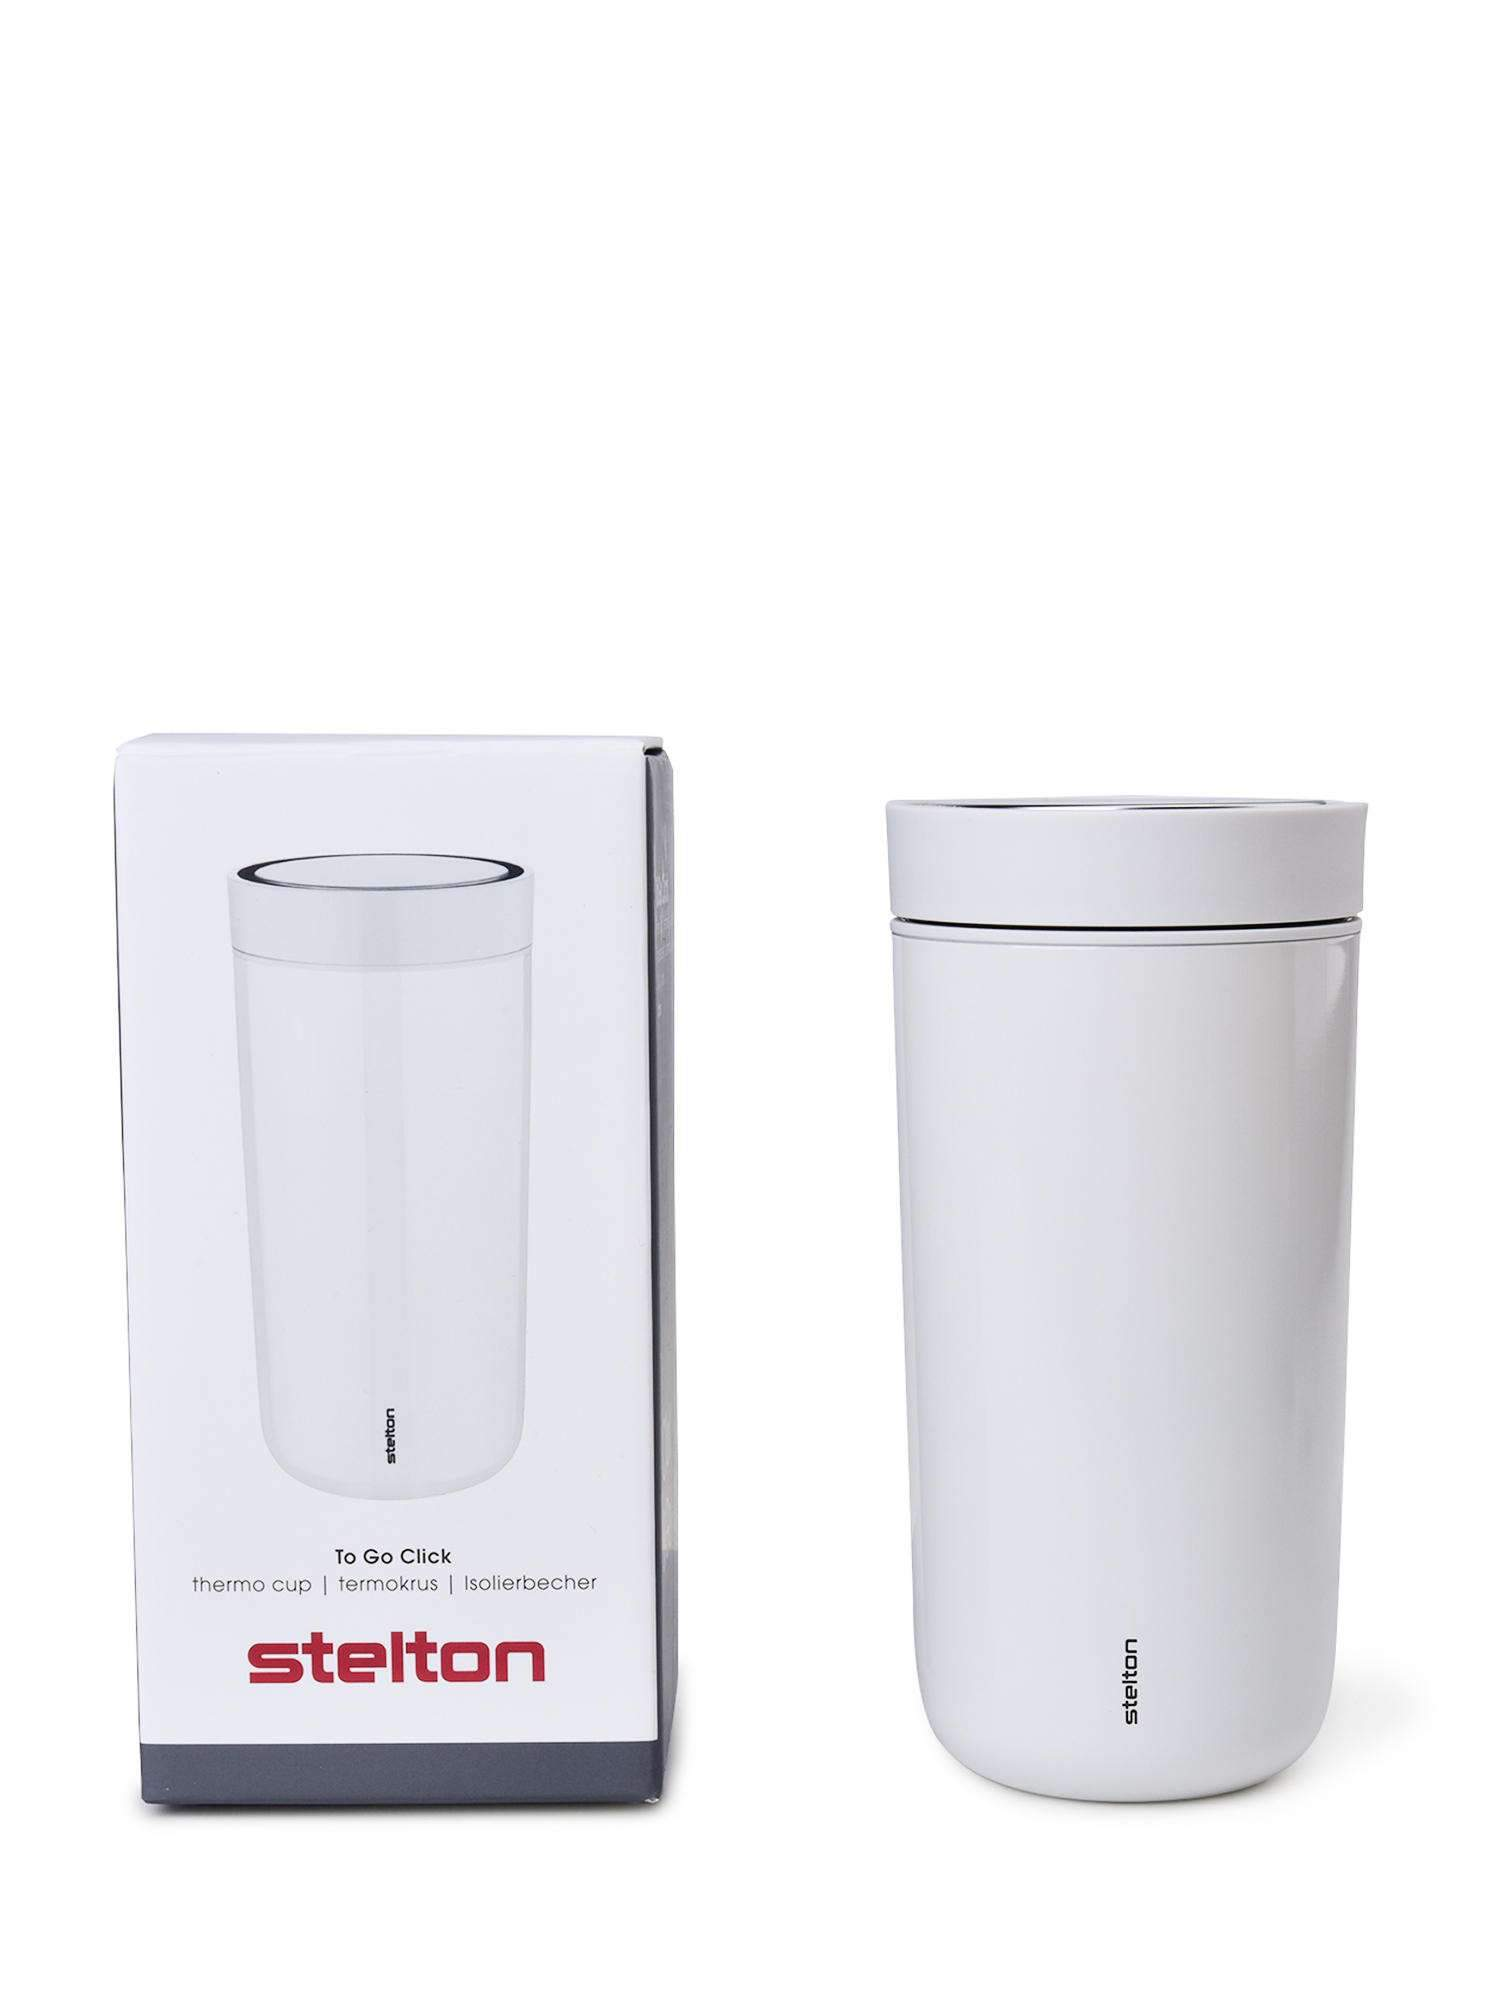 roomido wohnzimmer elegant stelton to go interesting to go travel thermal mug in stainless of roomido wohnzimmer